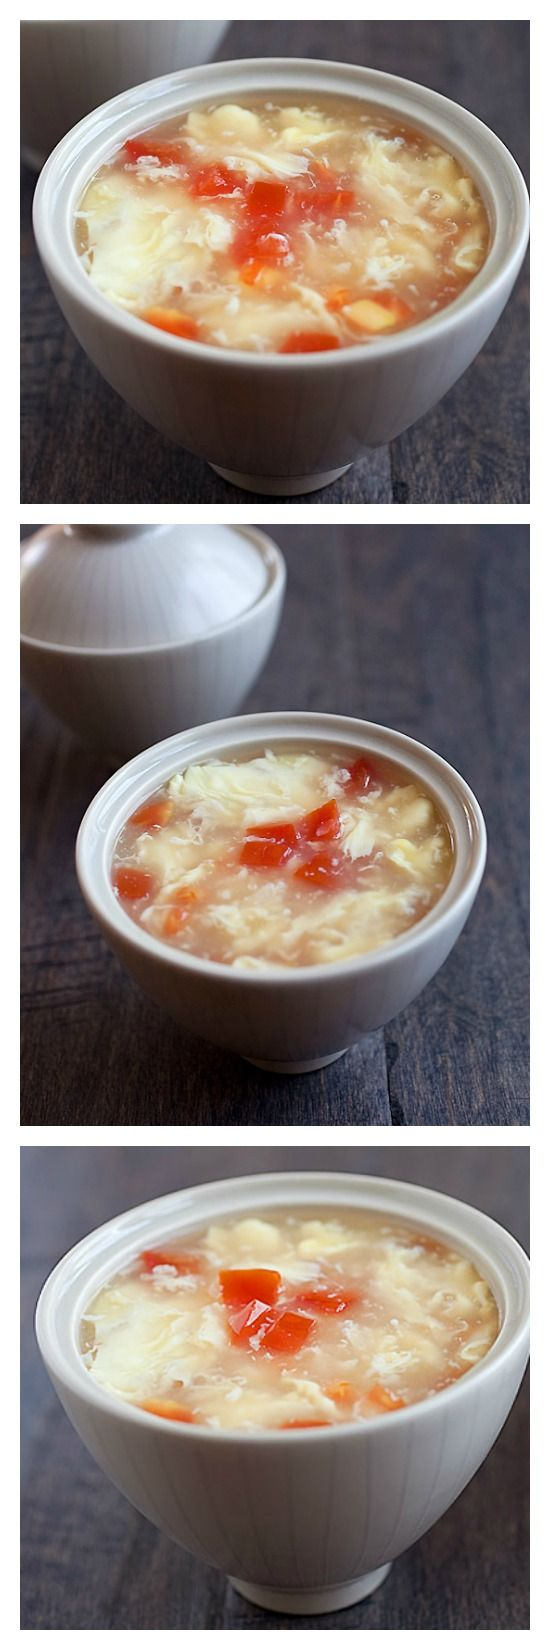 Egg drop soup - easiest and best Chinese egg drop soup recipe you'll find online. Takes 10 minutes, delicious and much better than takeout   rasamalaysia.com